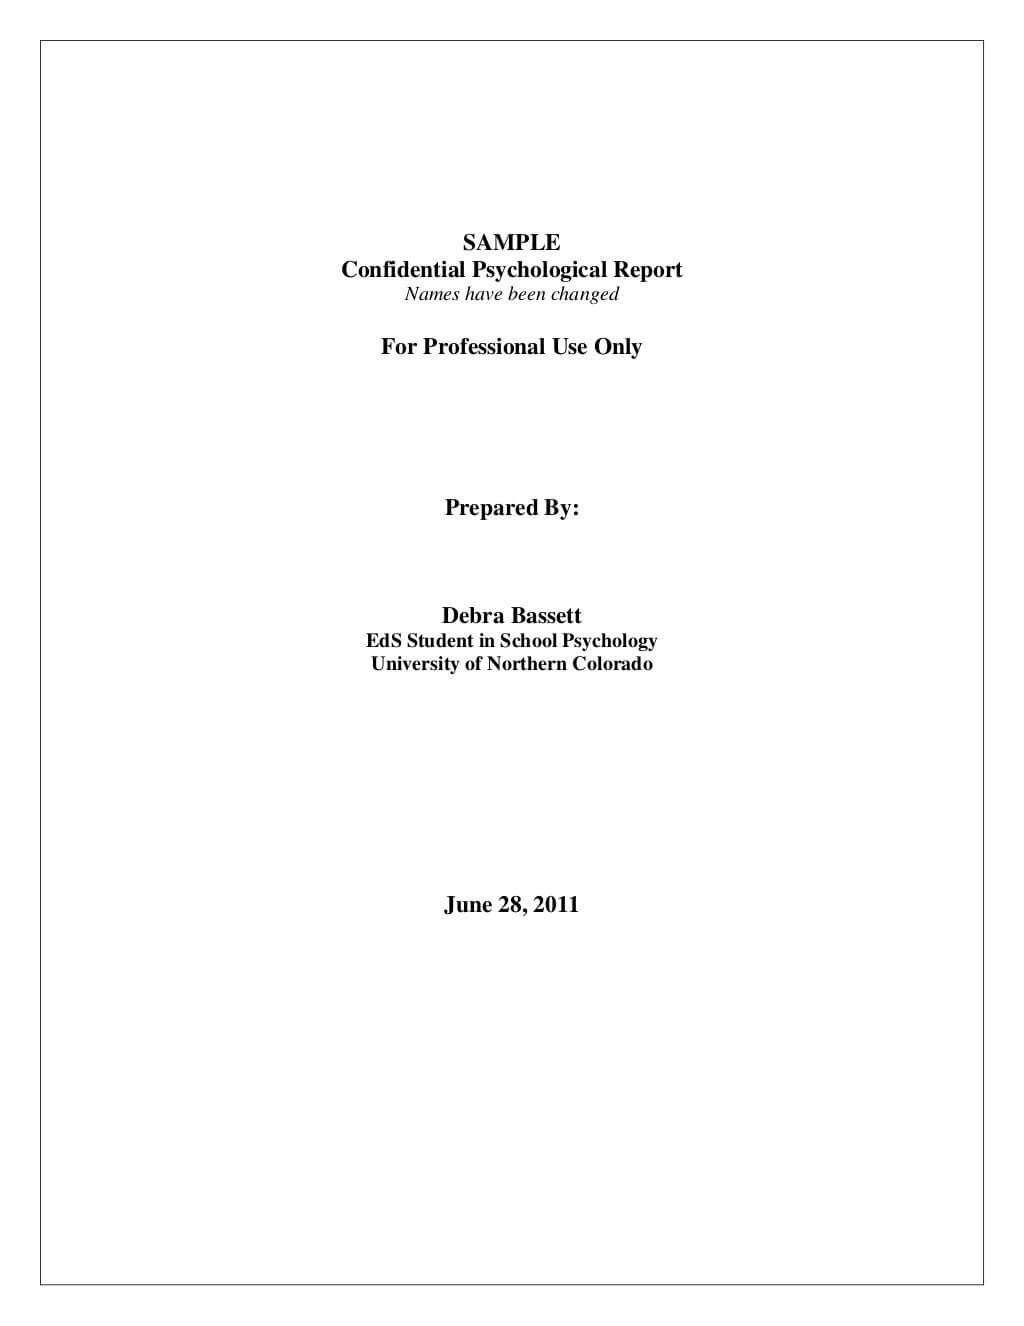 Full Psychological Report.sampledebrajean333 Via Within School Psychologist Report Template